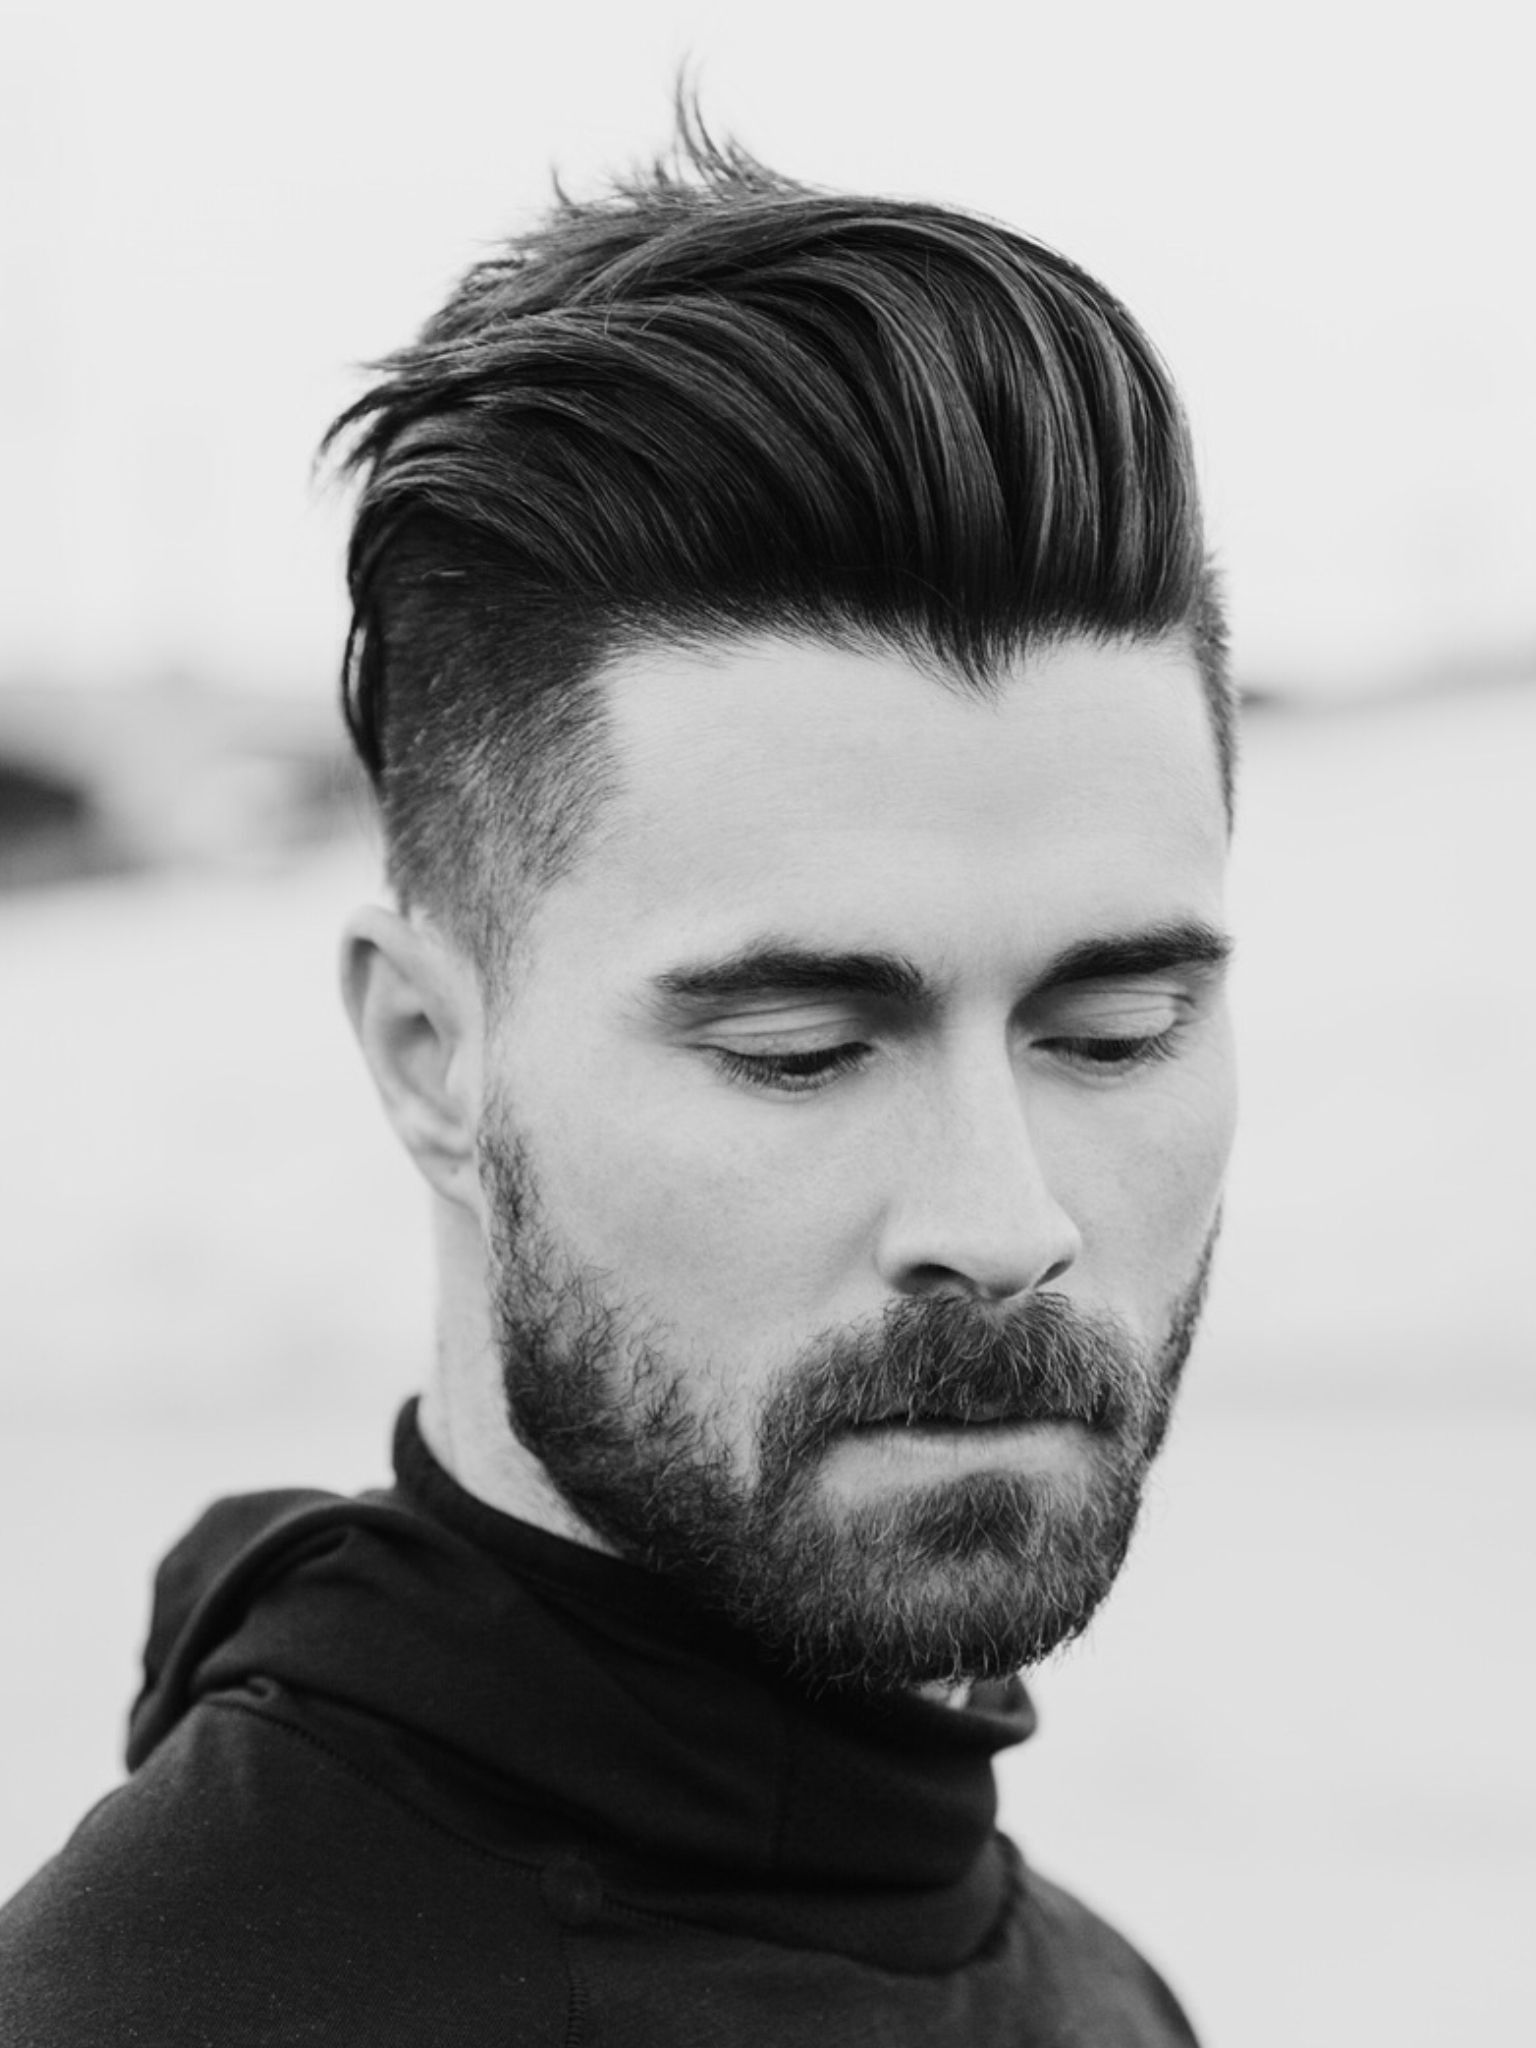 New Mens Hairstyle Based On Hairtype and Face https ...